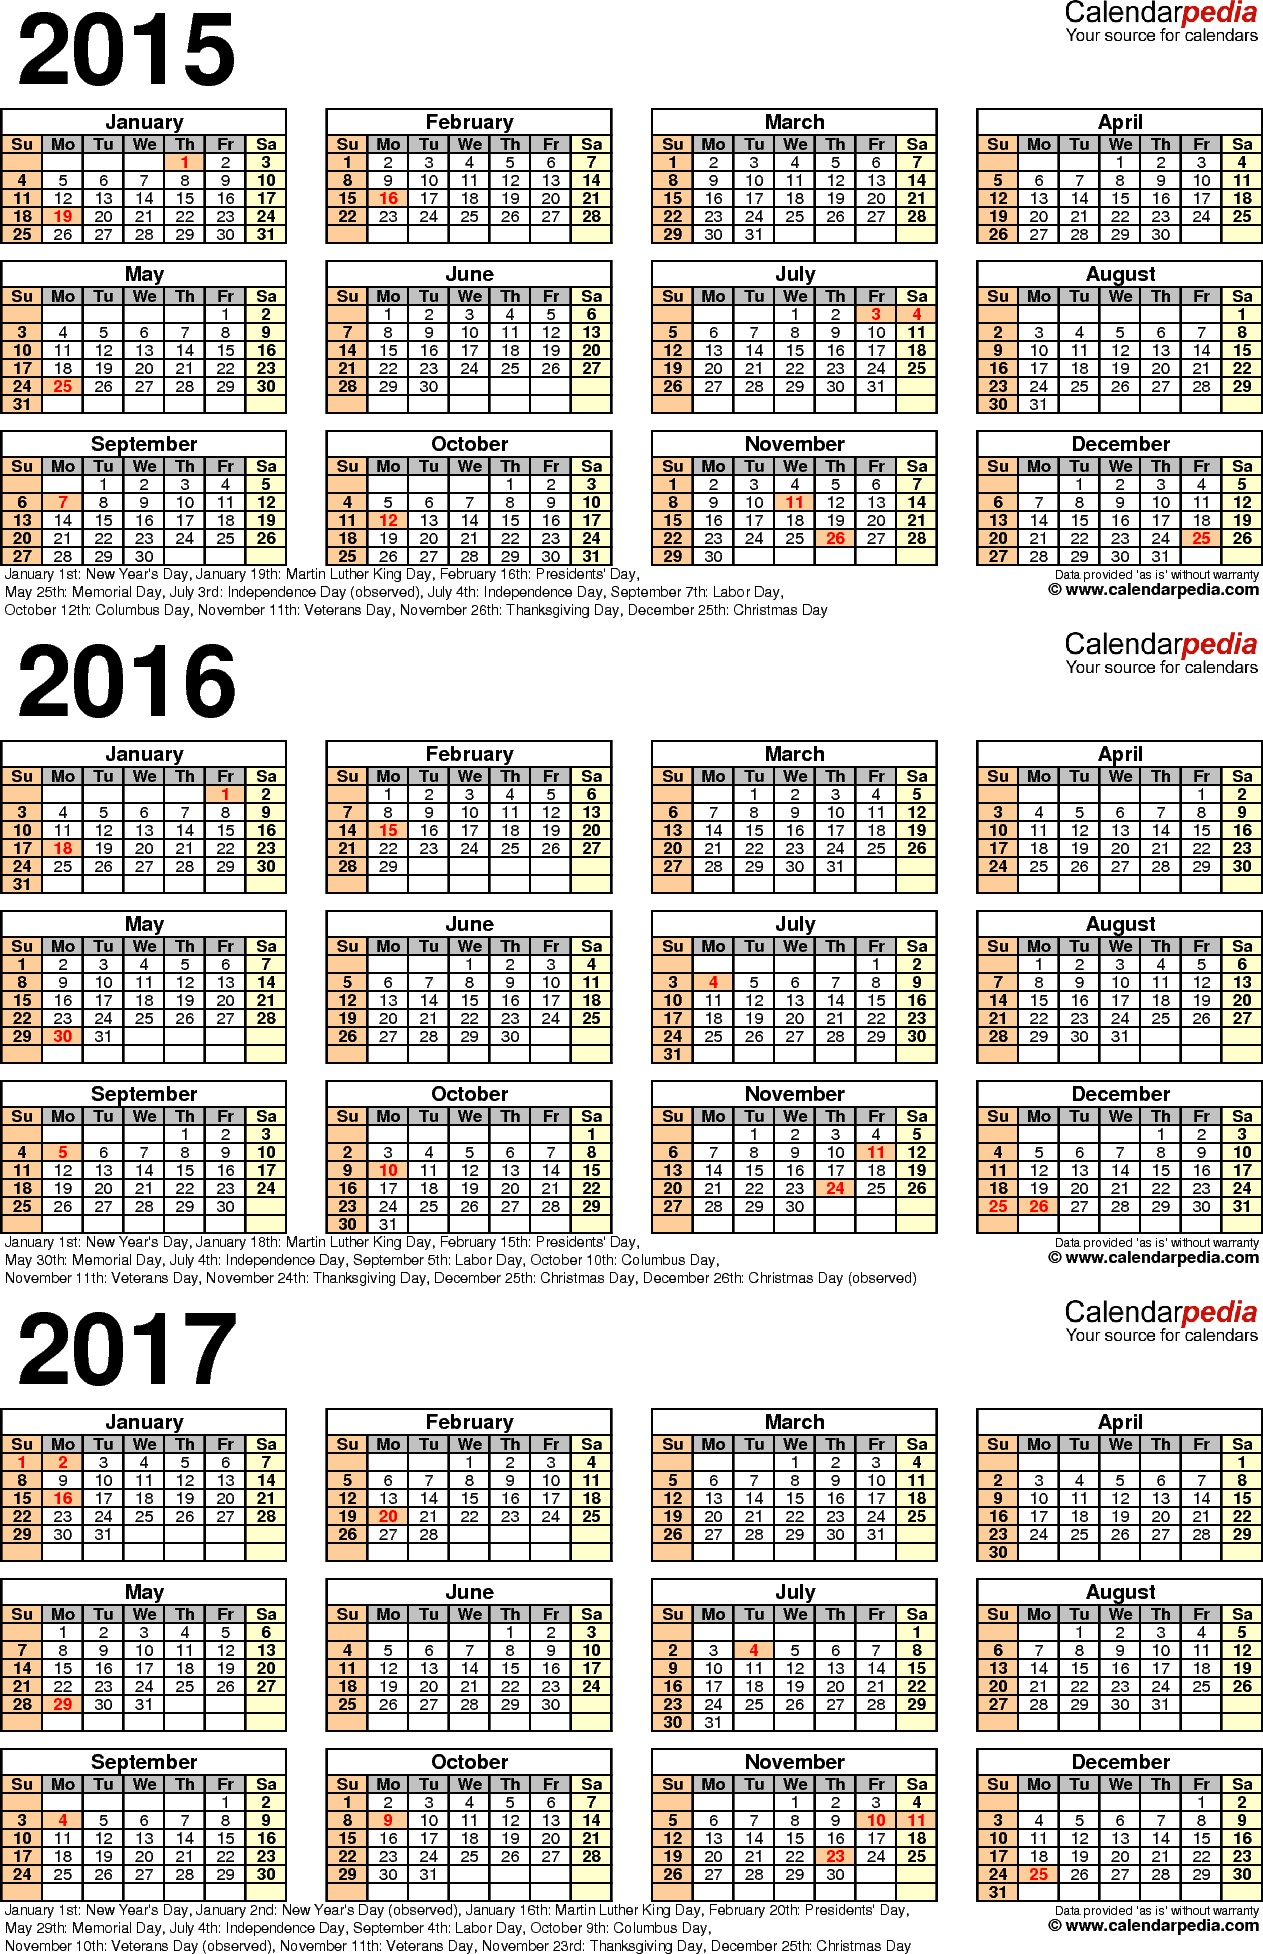 March 2019 Calendar Uk Printable Más Caliente 2015 2016 2017 Calendar 4 Three Year Printable Pdf Calendars Of March 2019 Calendar Uk Printable Más Recientes March 2019 Desktop Background Calendar